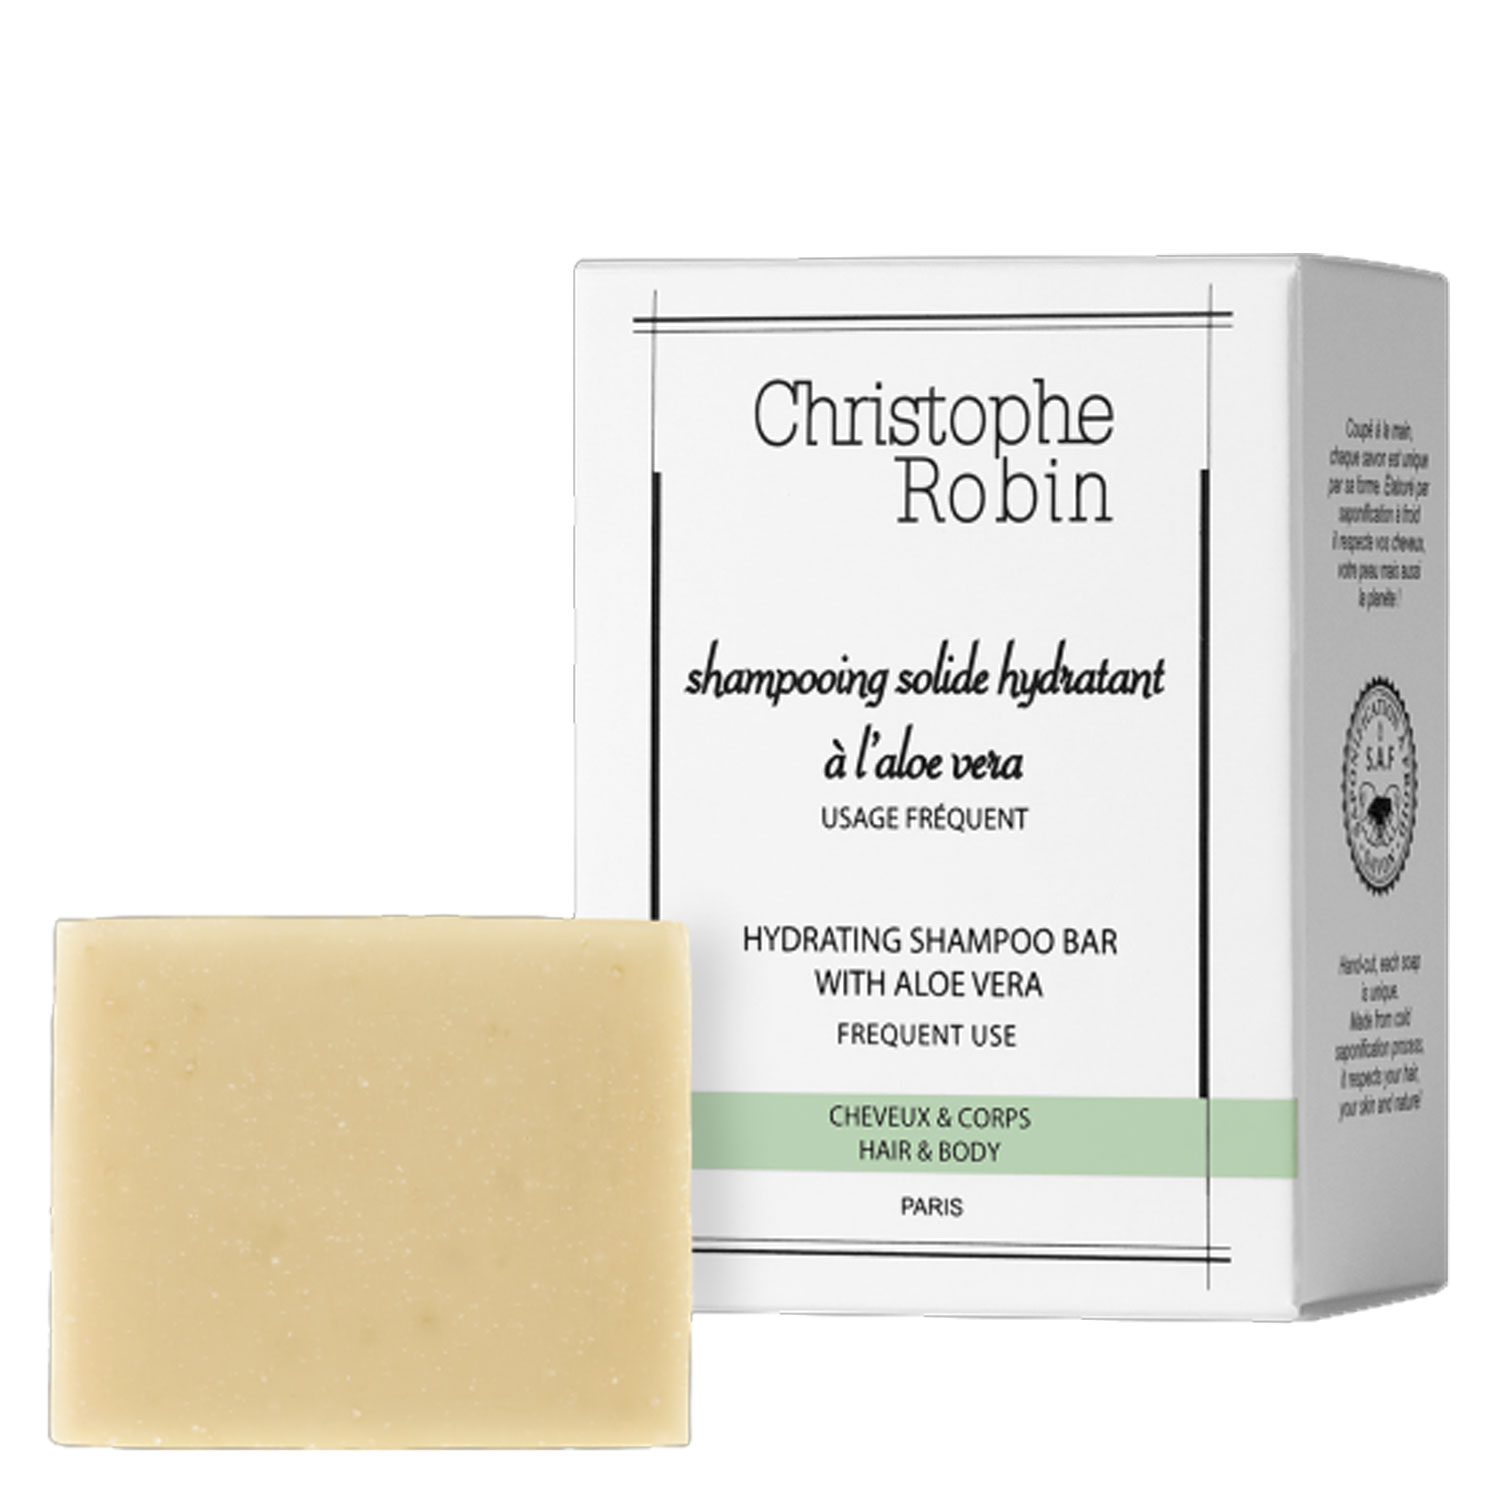 Christophe Robin - Shampooing Solide hydratant à l'aloe vera - 100g